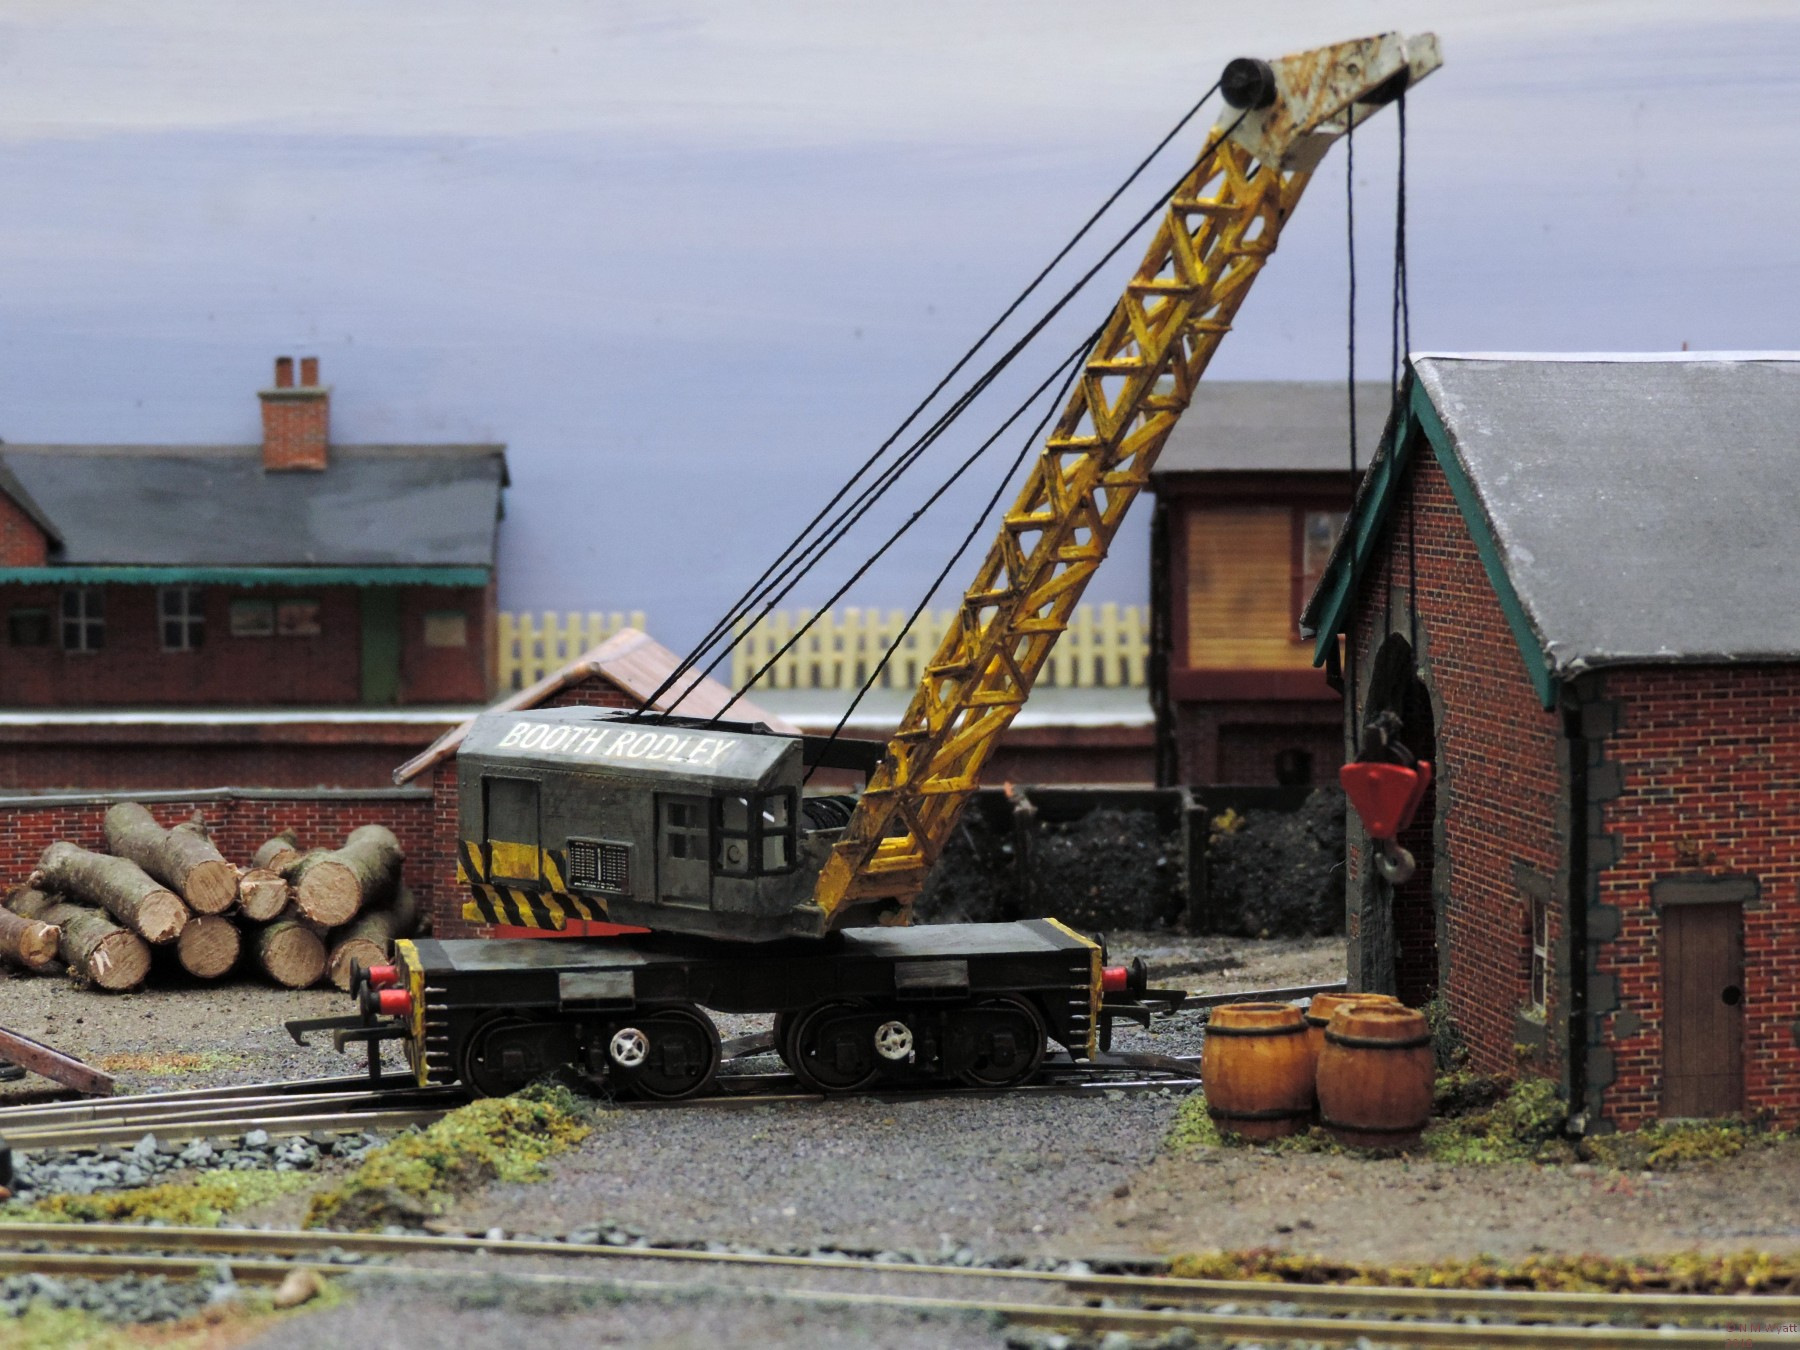 Booth Rodley 15T crane, Dapol Airfix model.